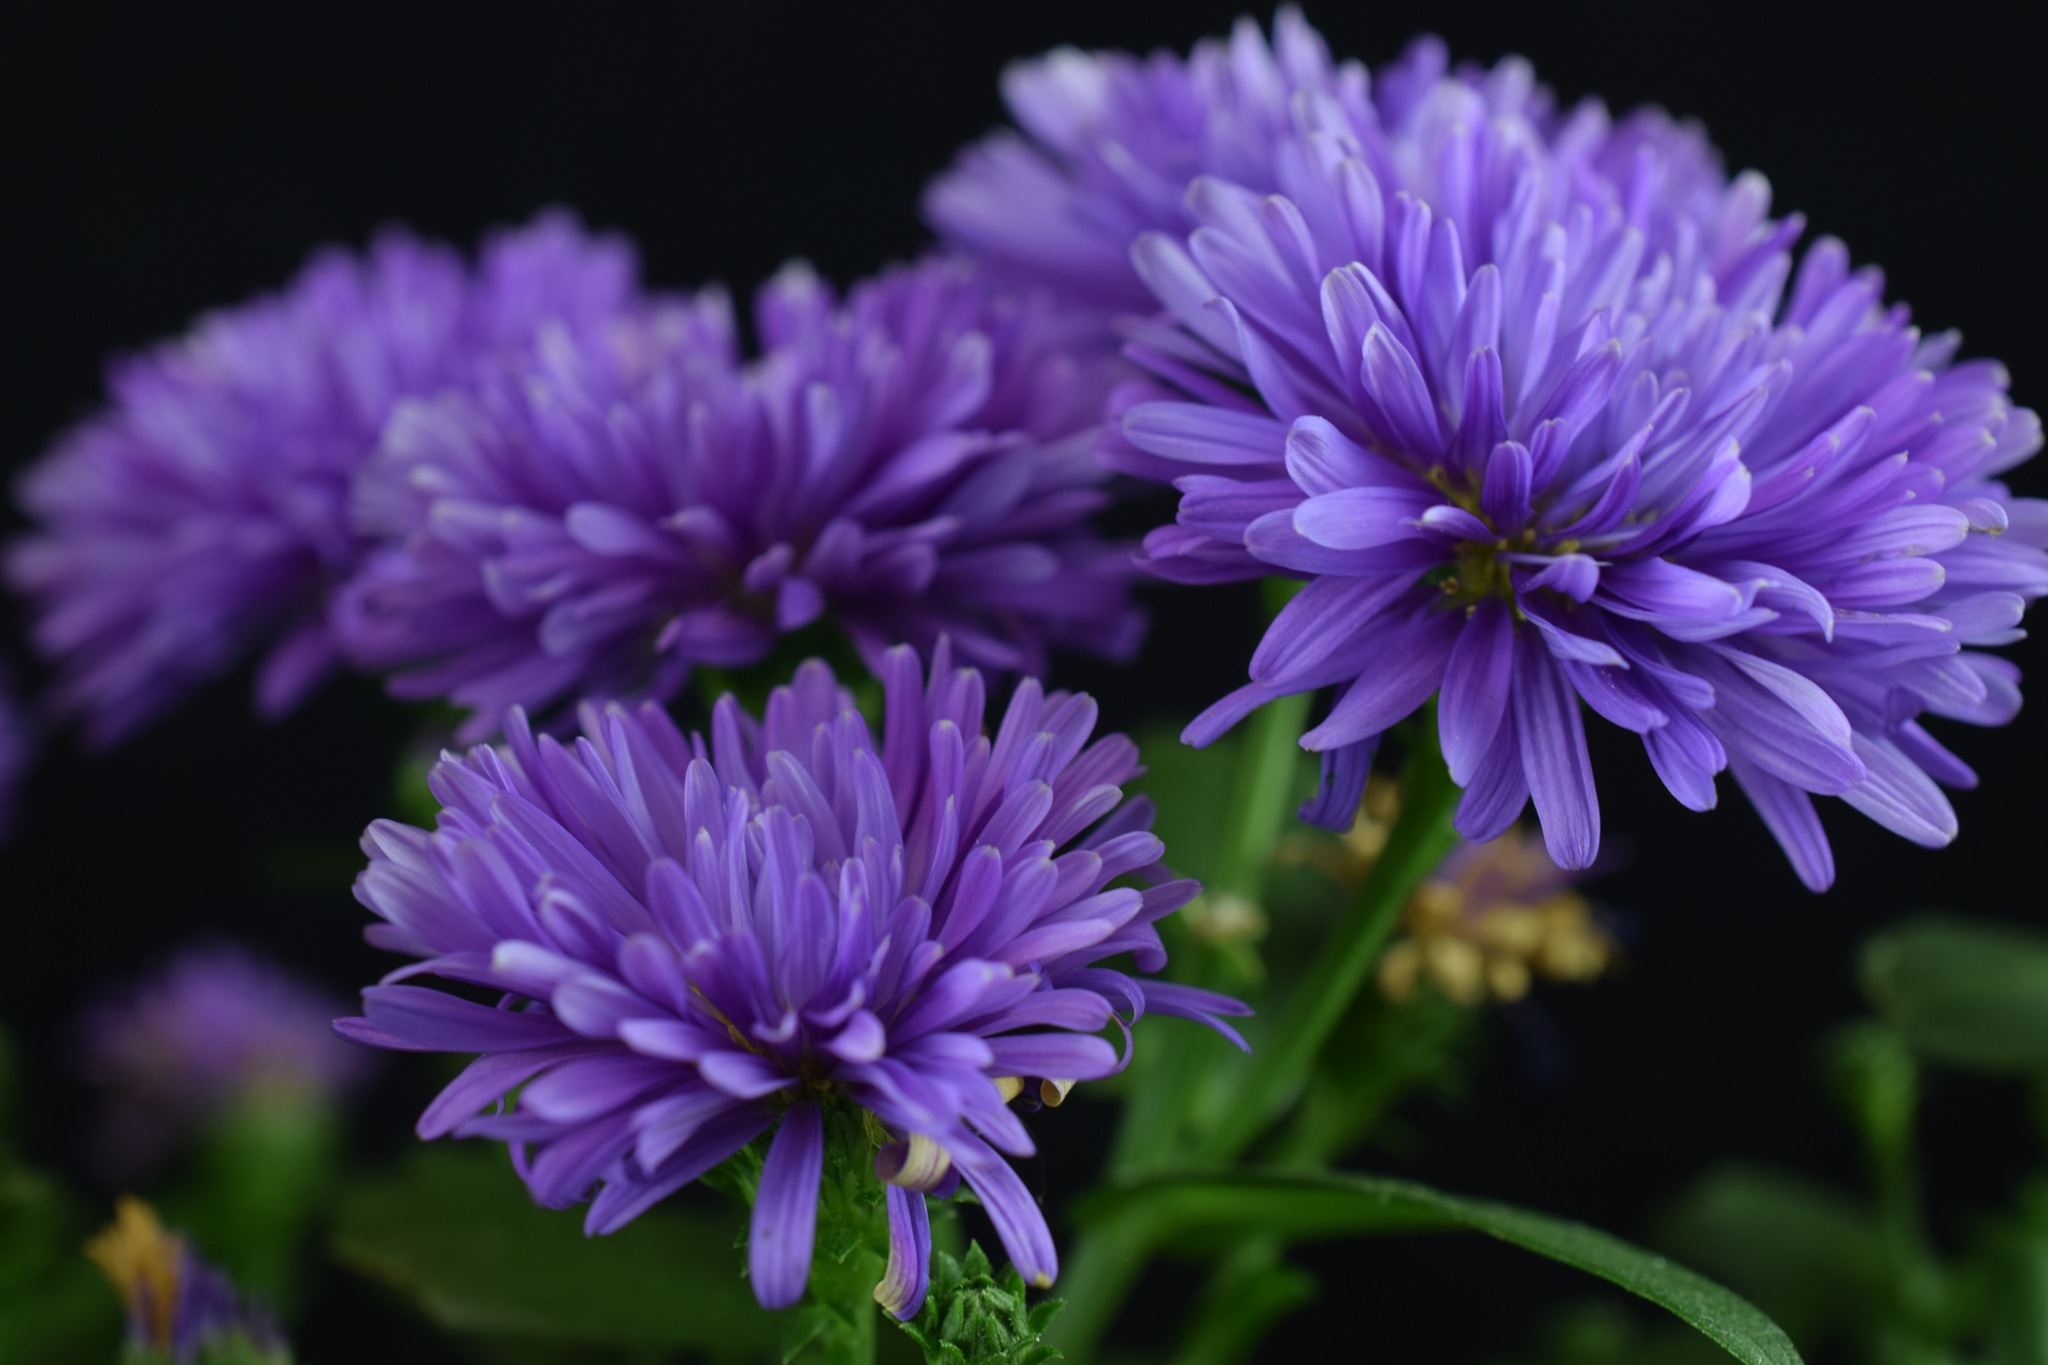 Aster victoria flowers by Theresia Buskas